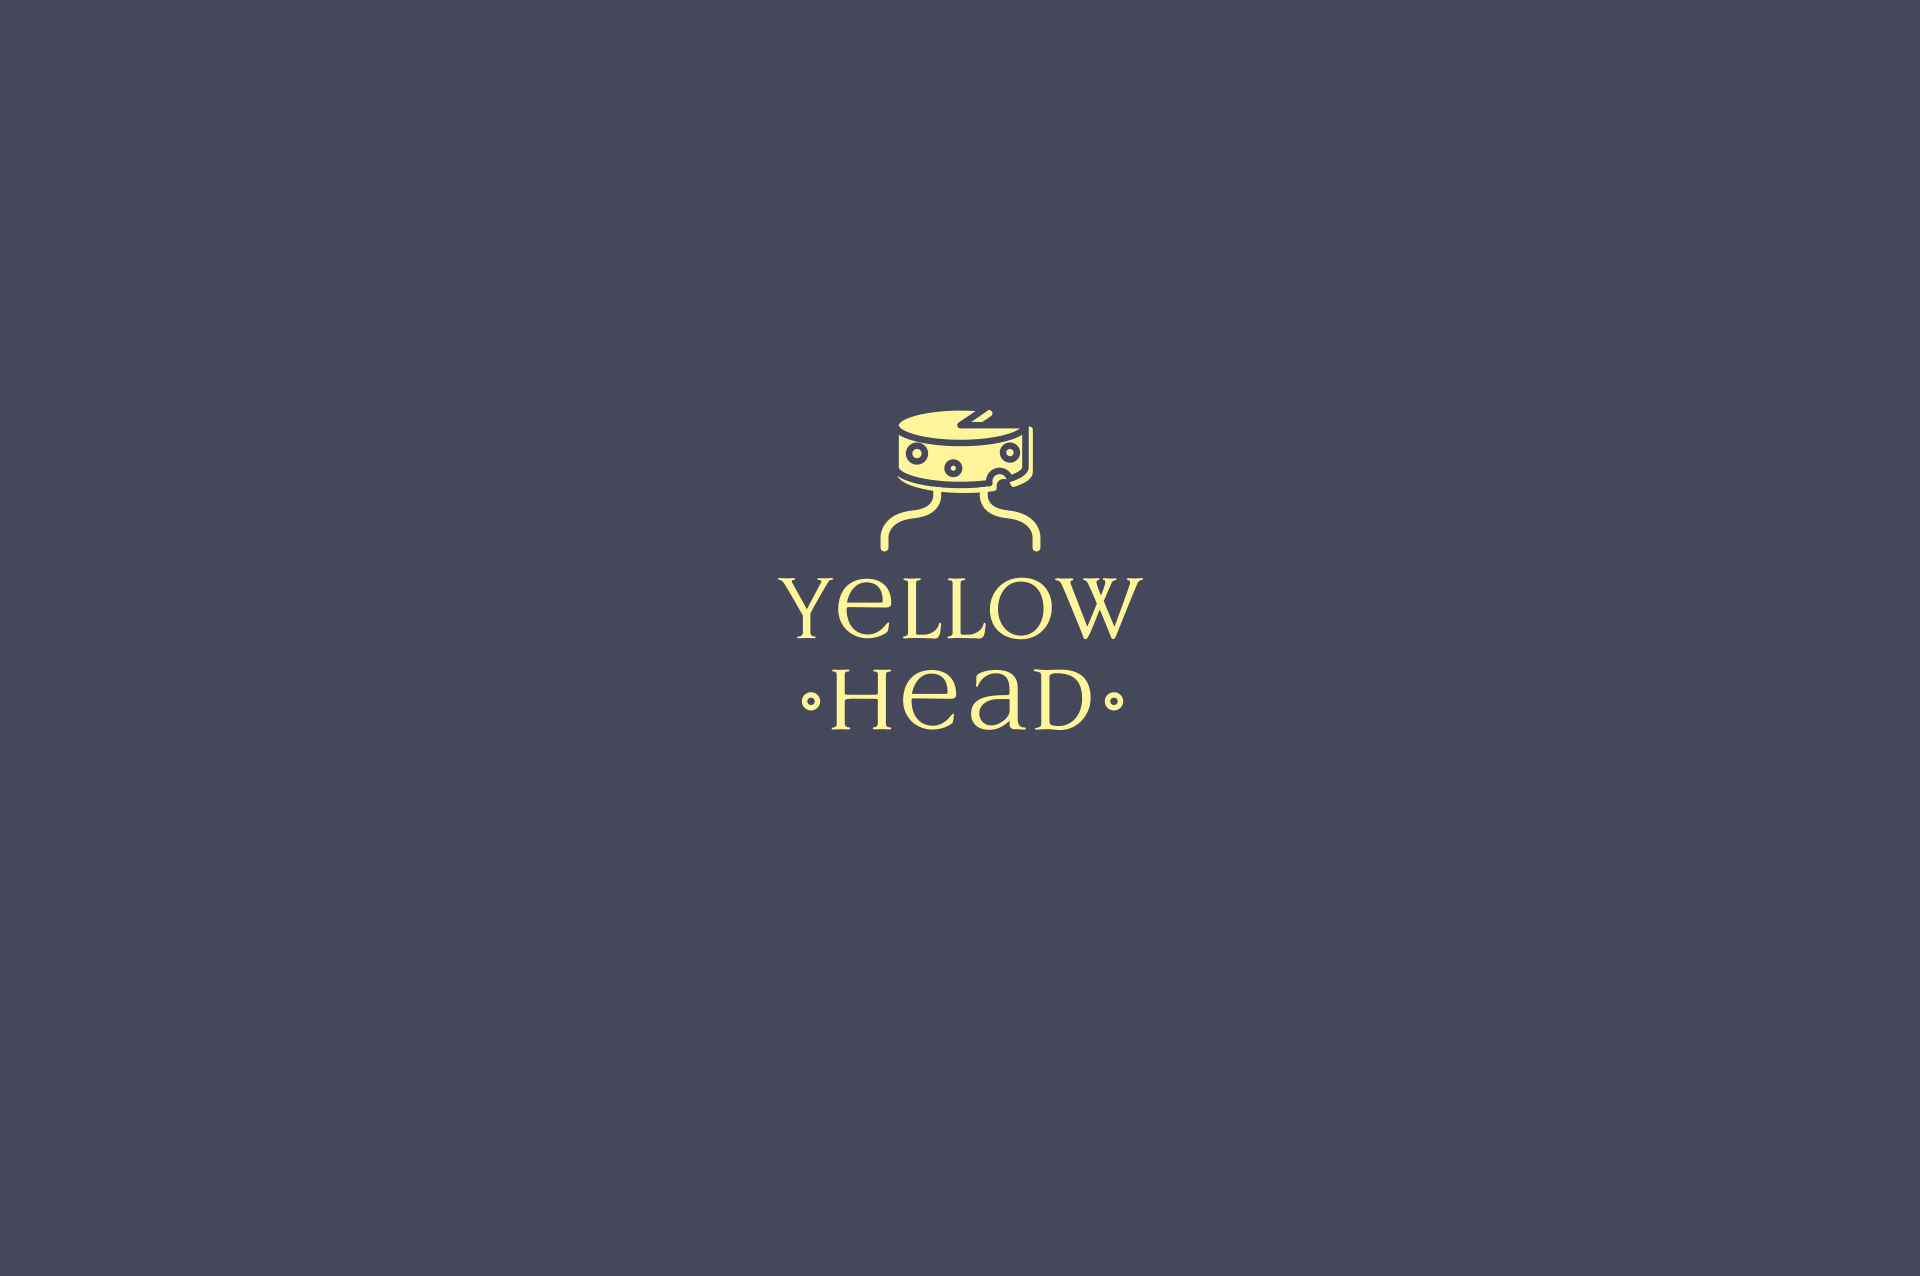 Нейминг, Дизайн упаковки, Брендинг, Yellow Head, Brand Loft Agency